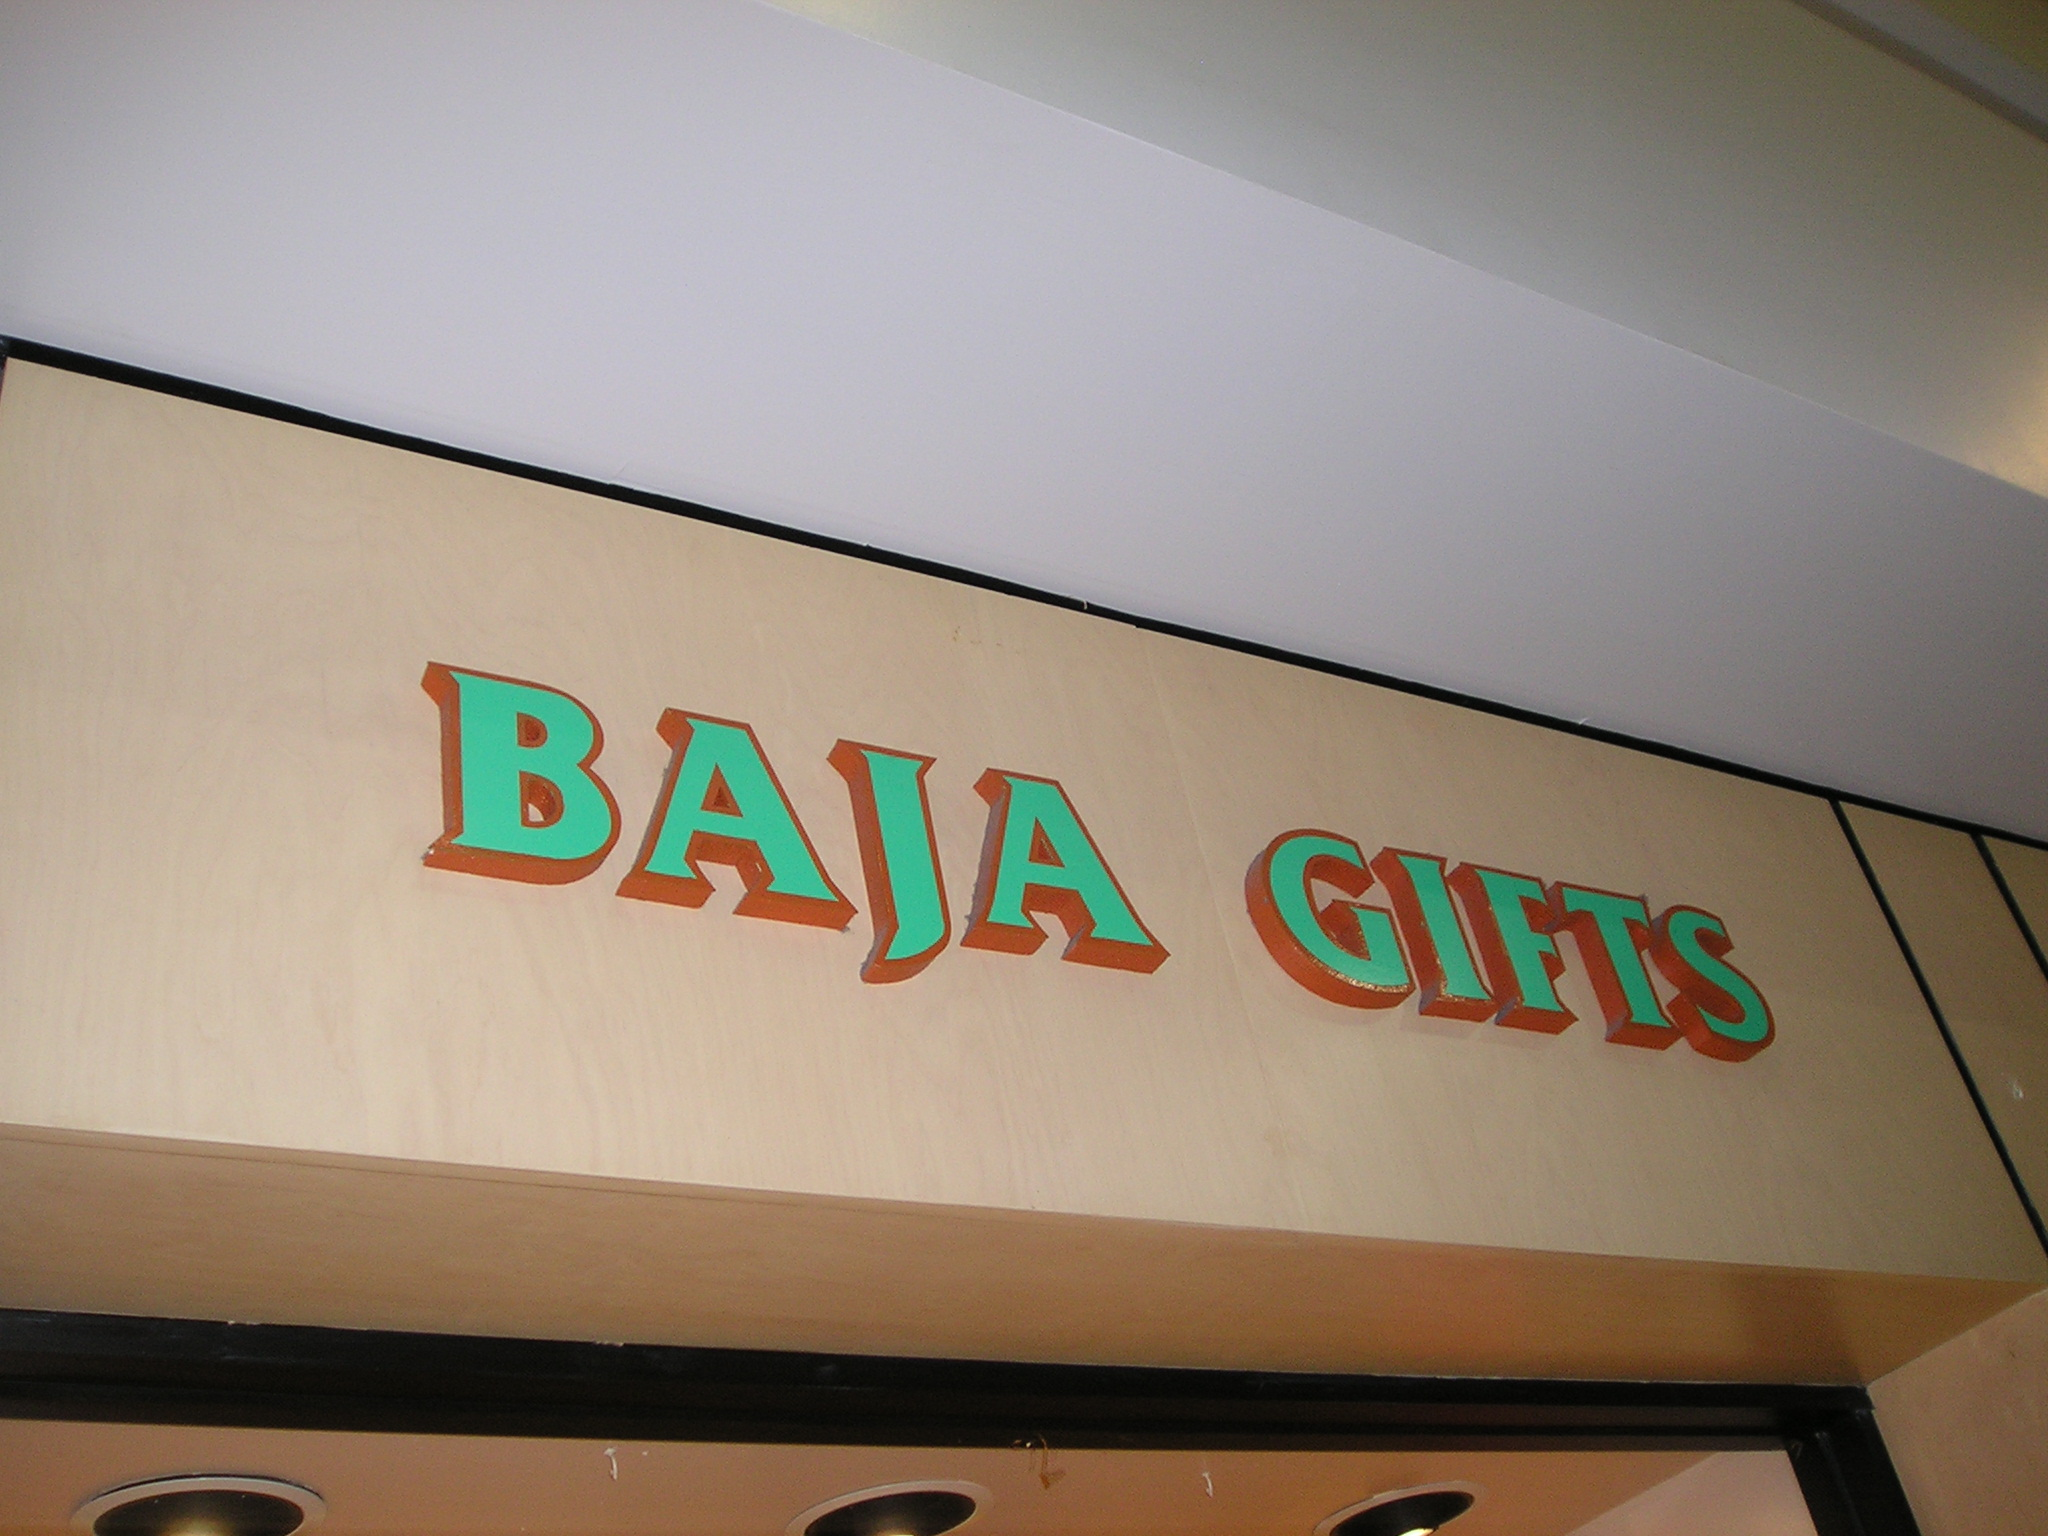 SA28343 - Shopping Mall Gift Shop Sign with Carved Raised Outline Letters.